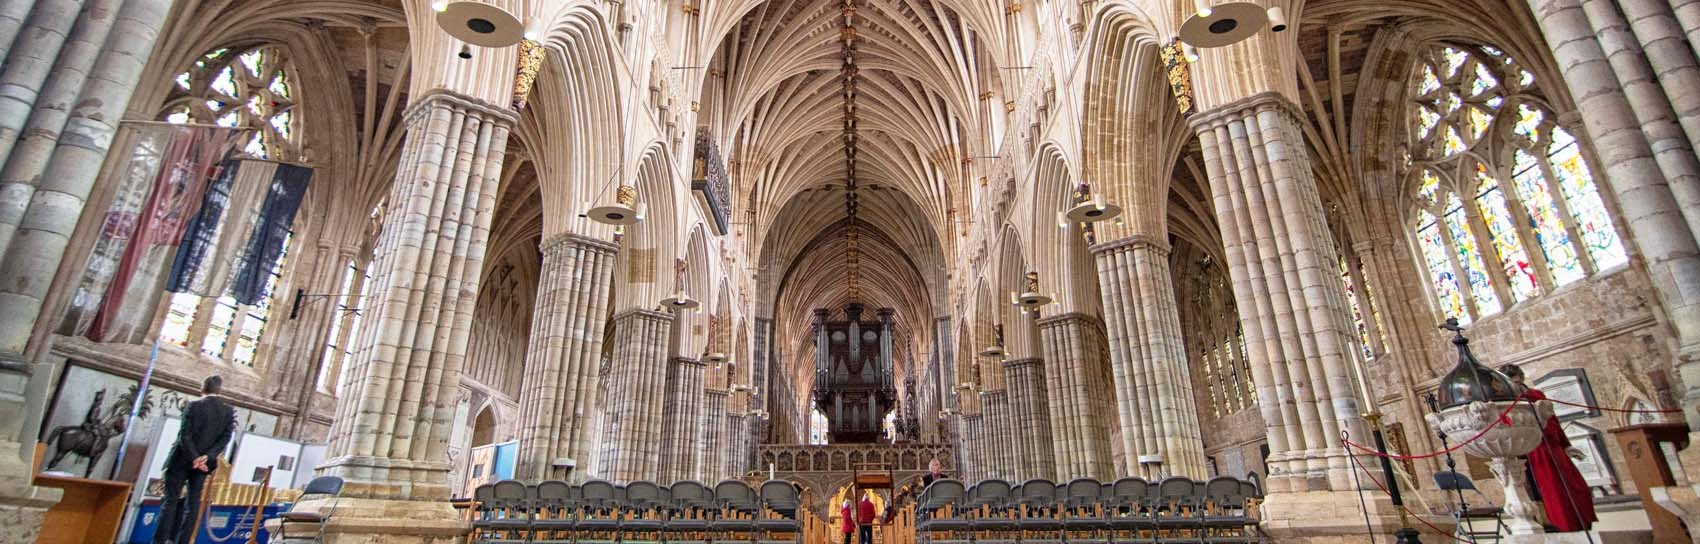 The interior of Exeter Cathedral. Photograph by ALEX GRAEME